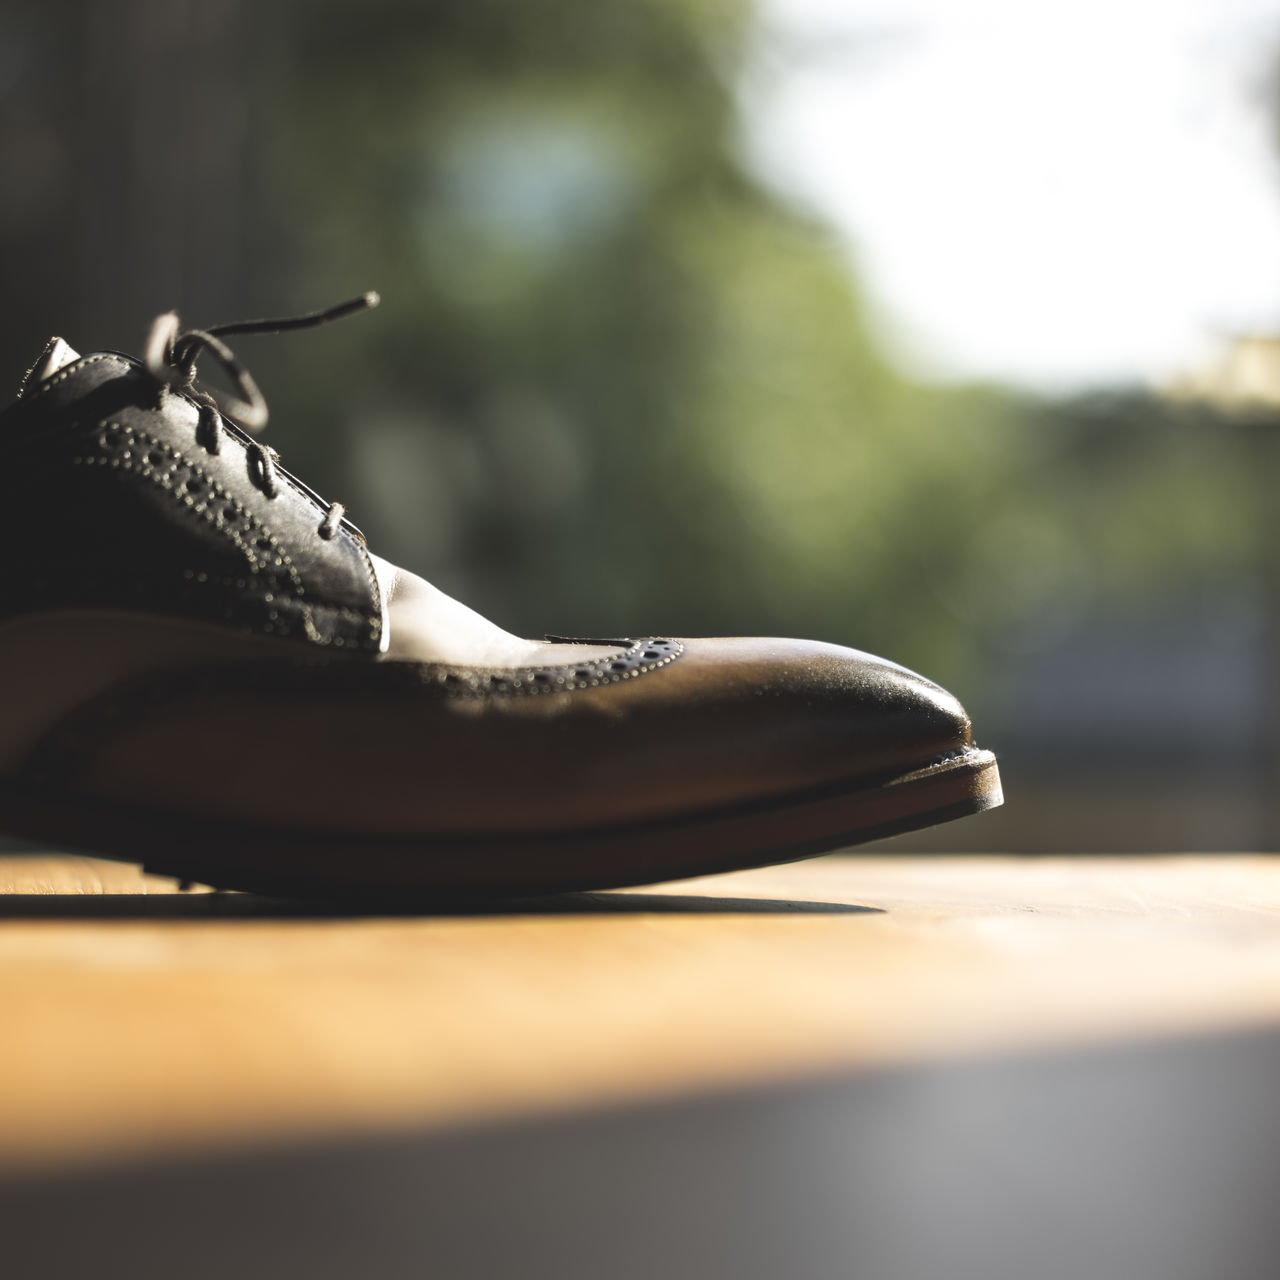 Close-Up Of Shoe On Floor